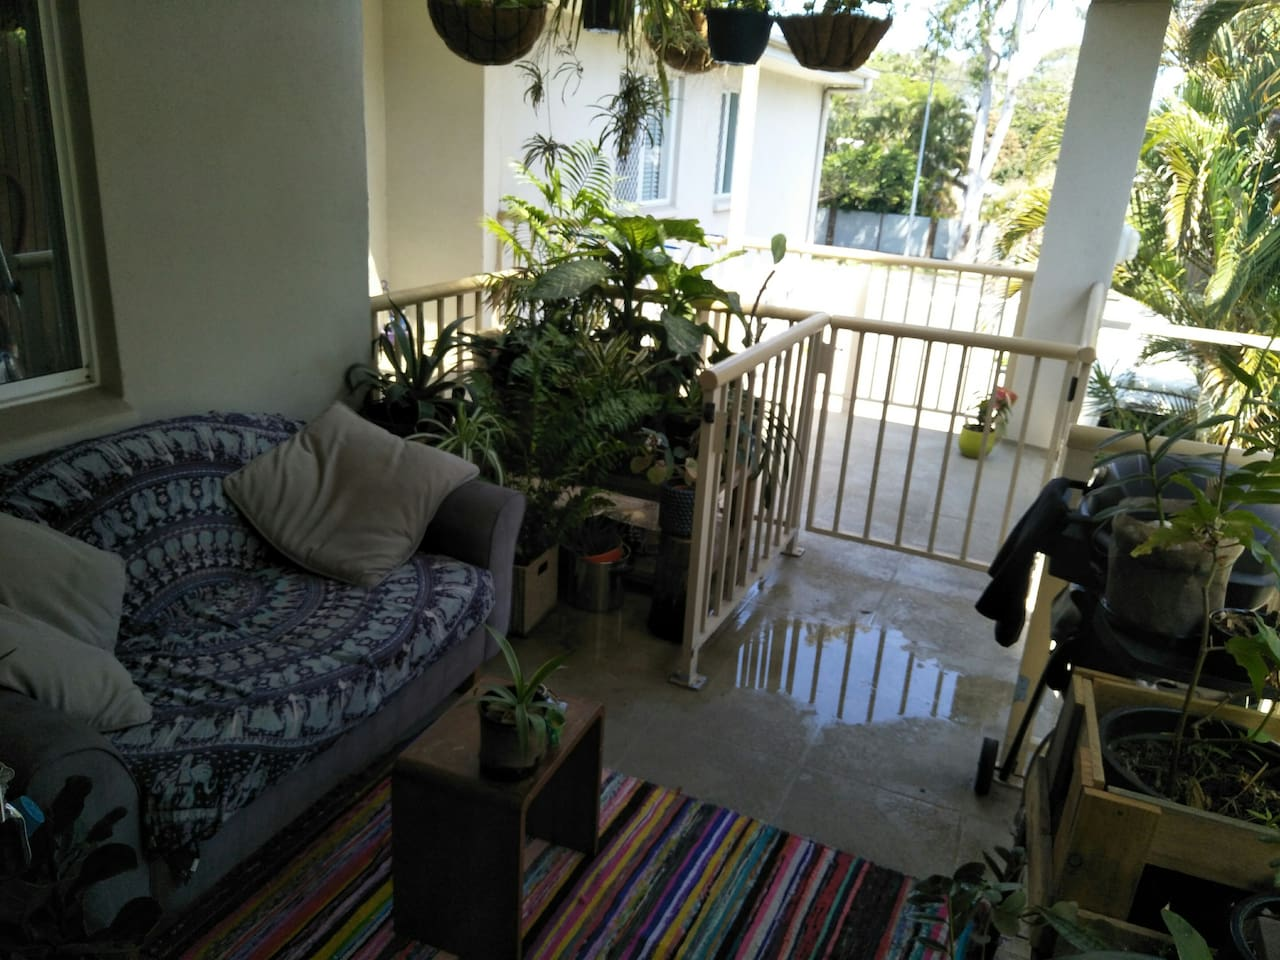 Lovely, green and breezy balcony to enjoy the peace and tranquility of this glorious boho space.